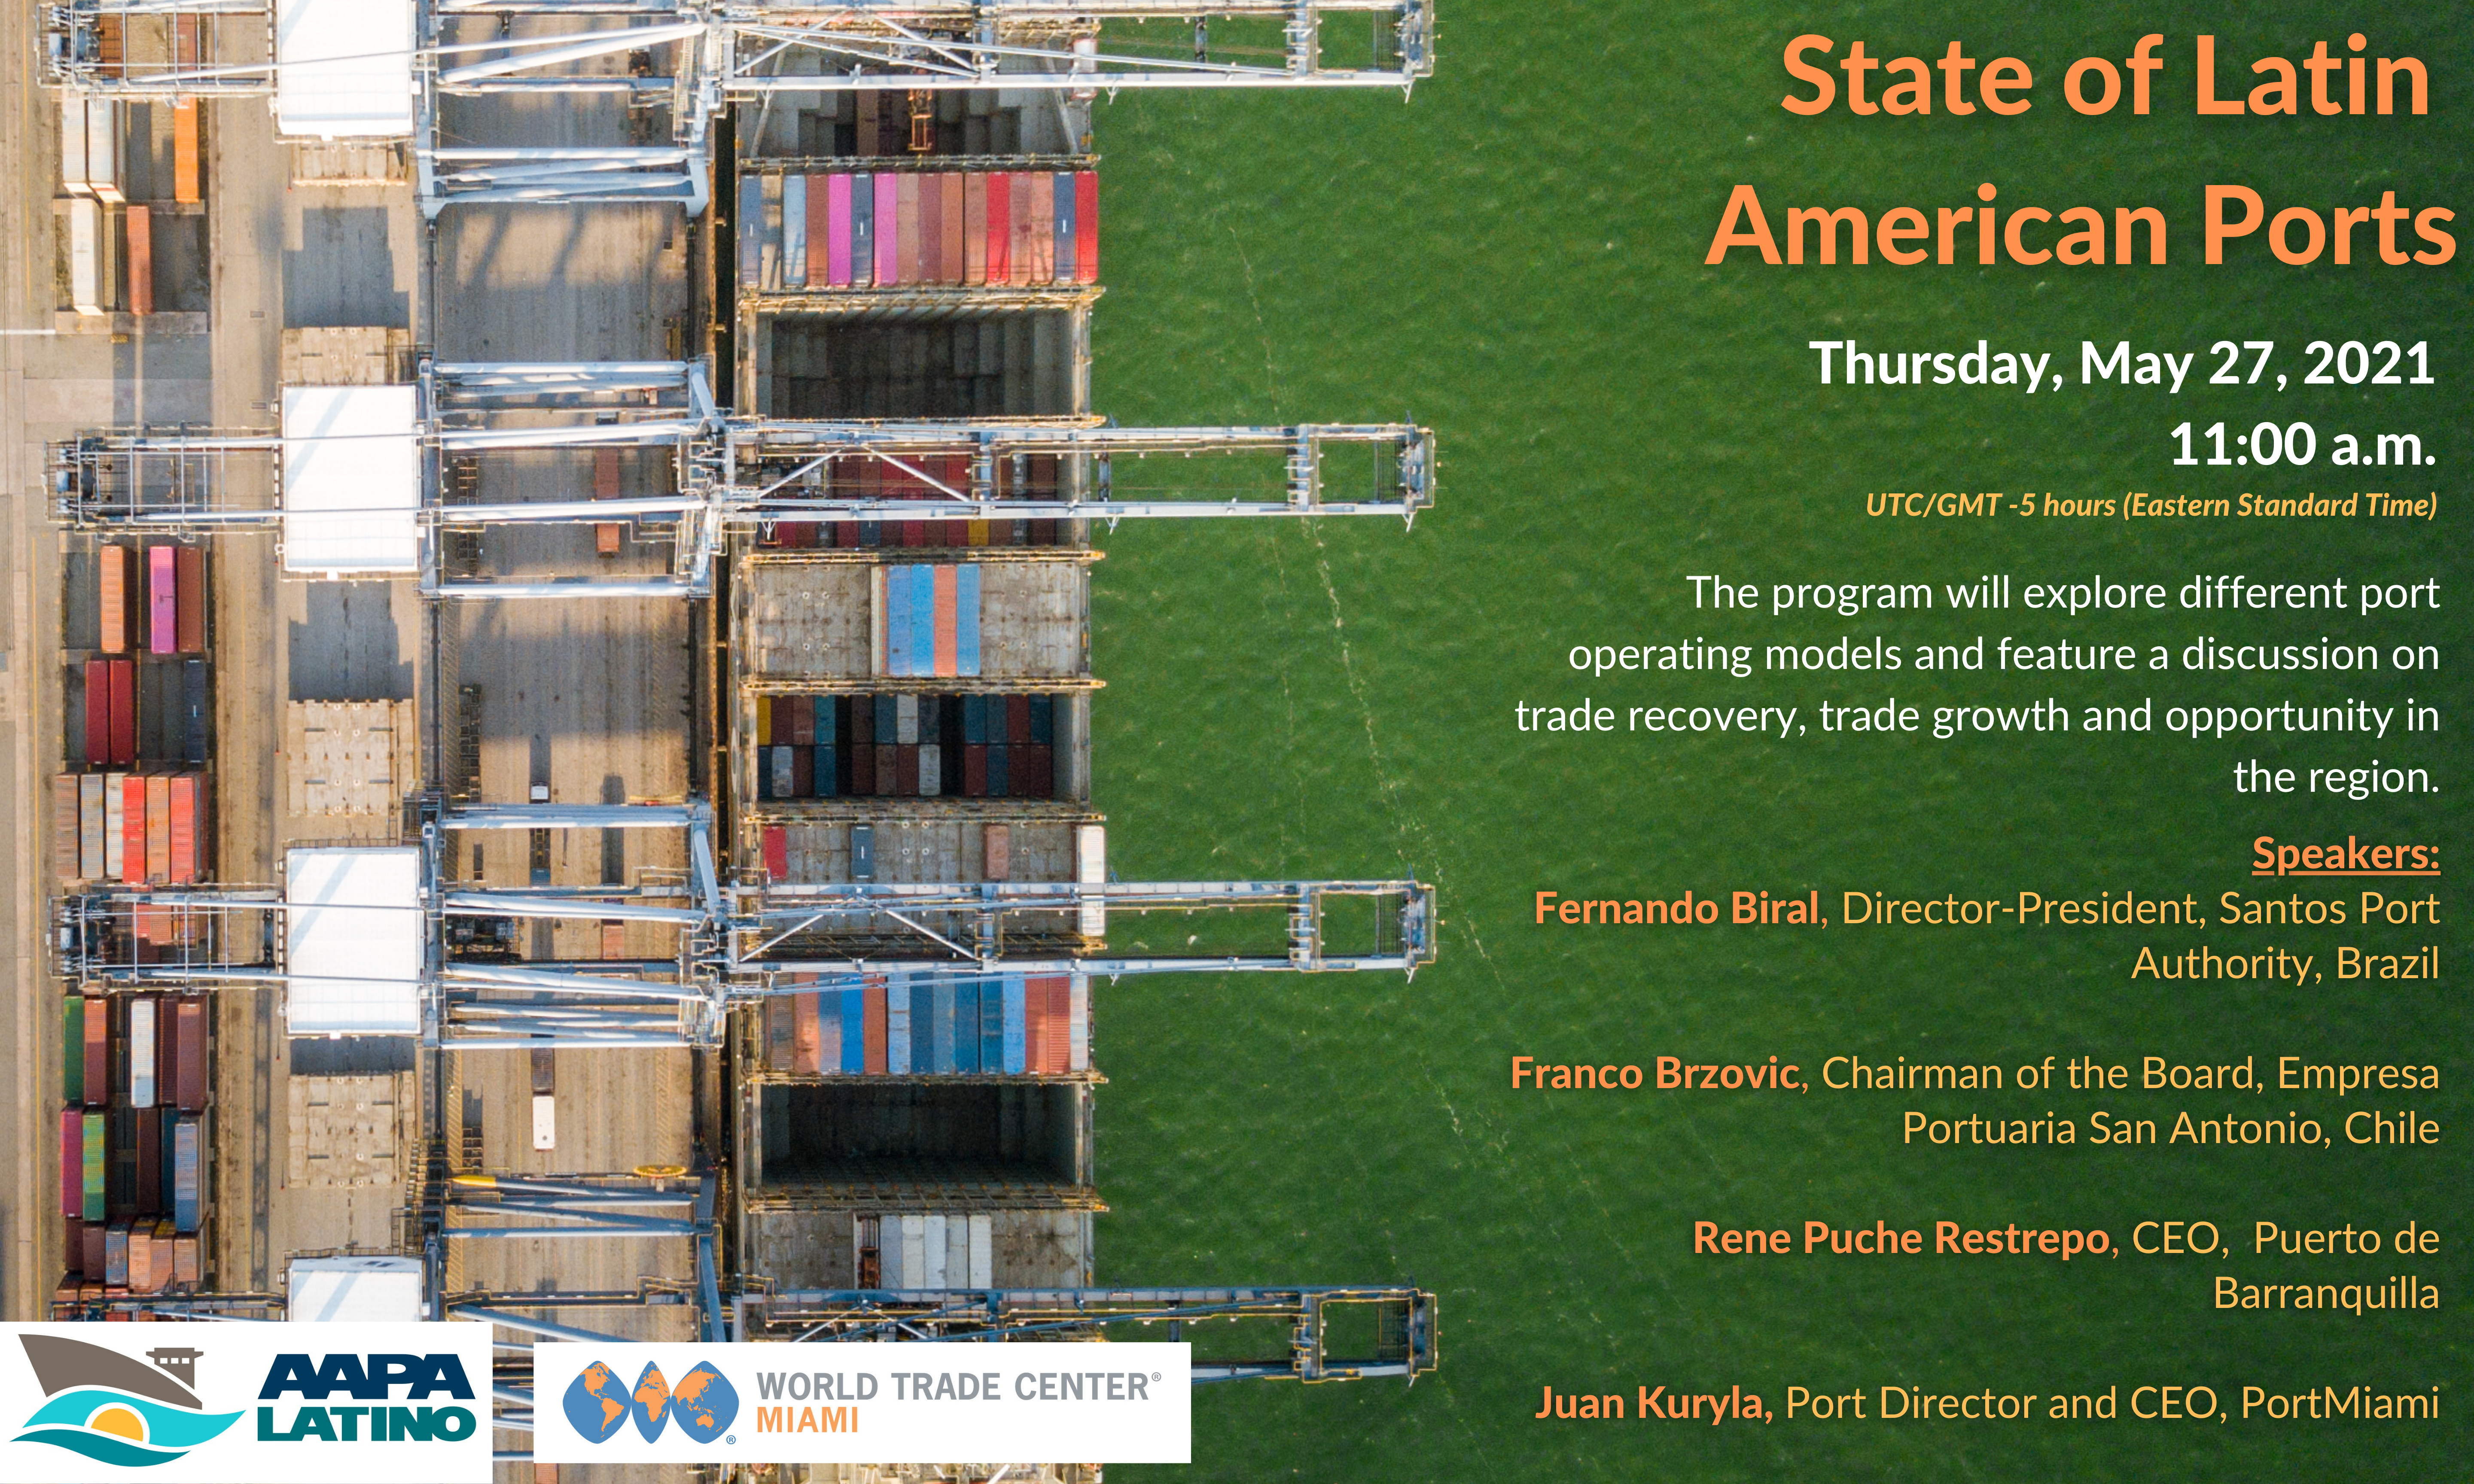 State of Latin American Ports_UPDATED